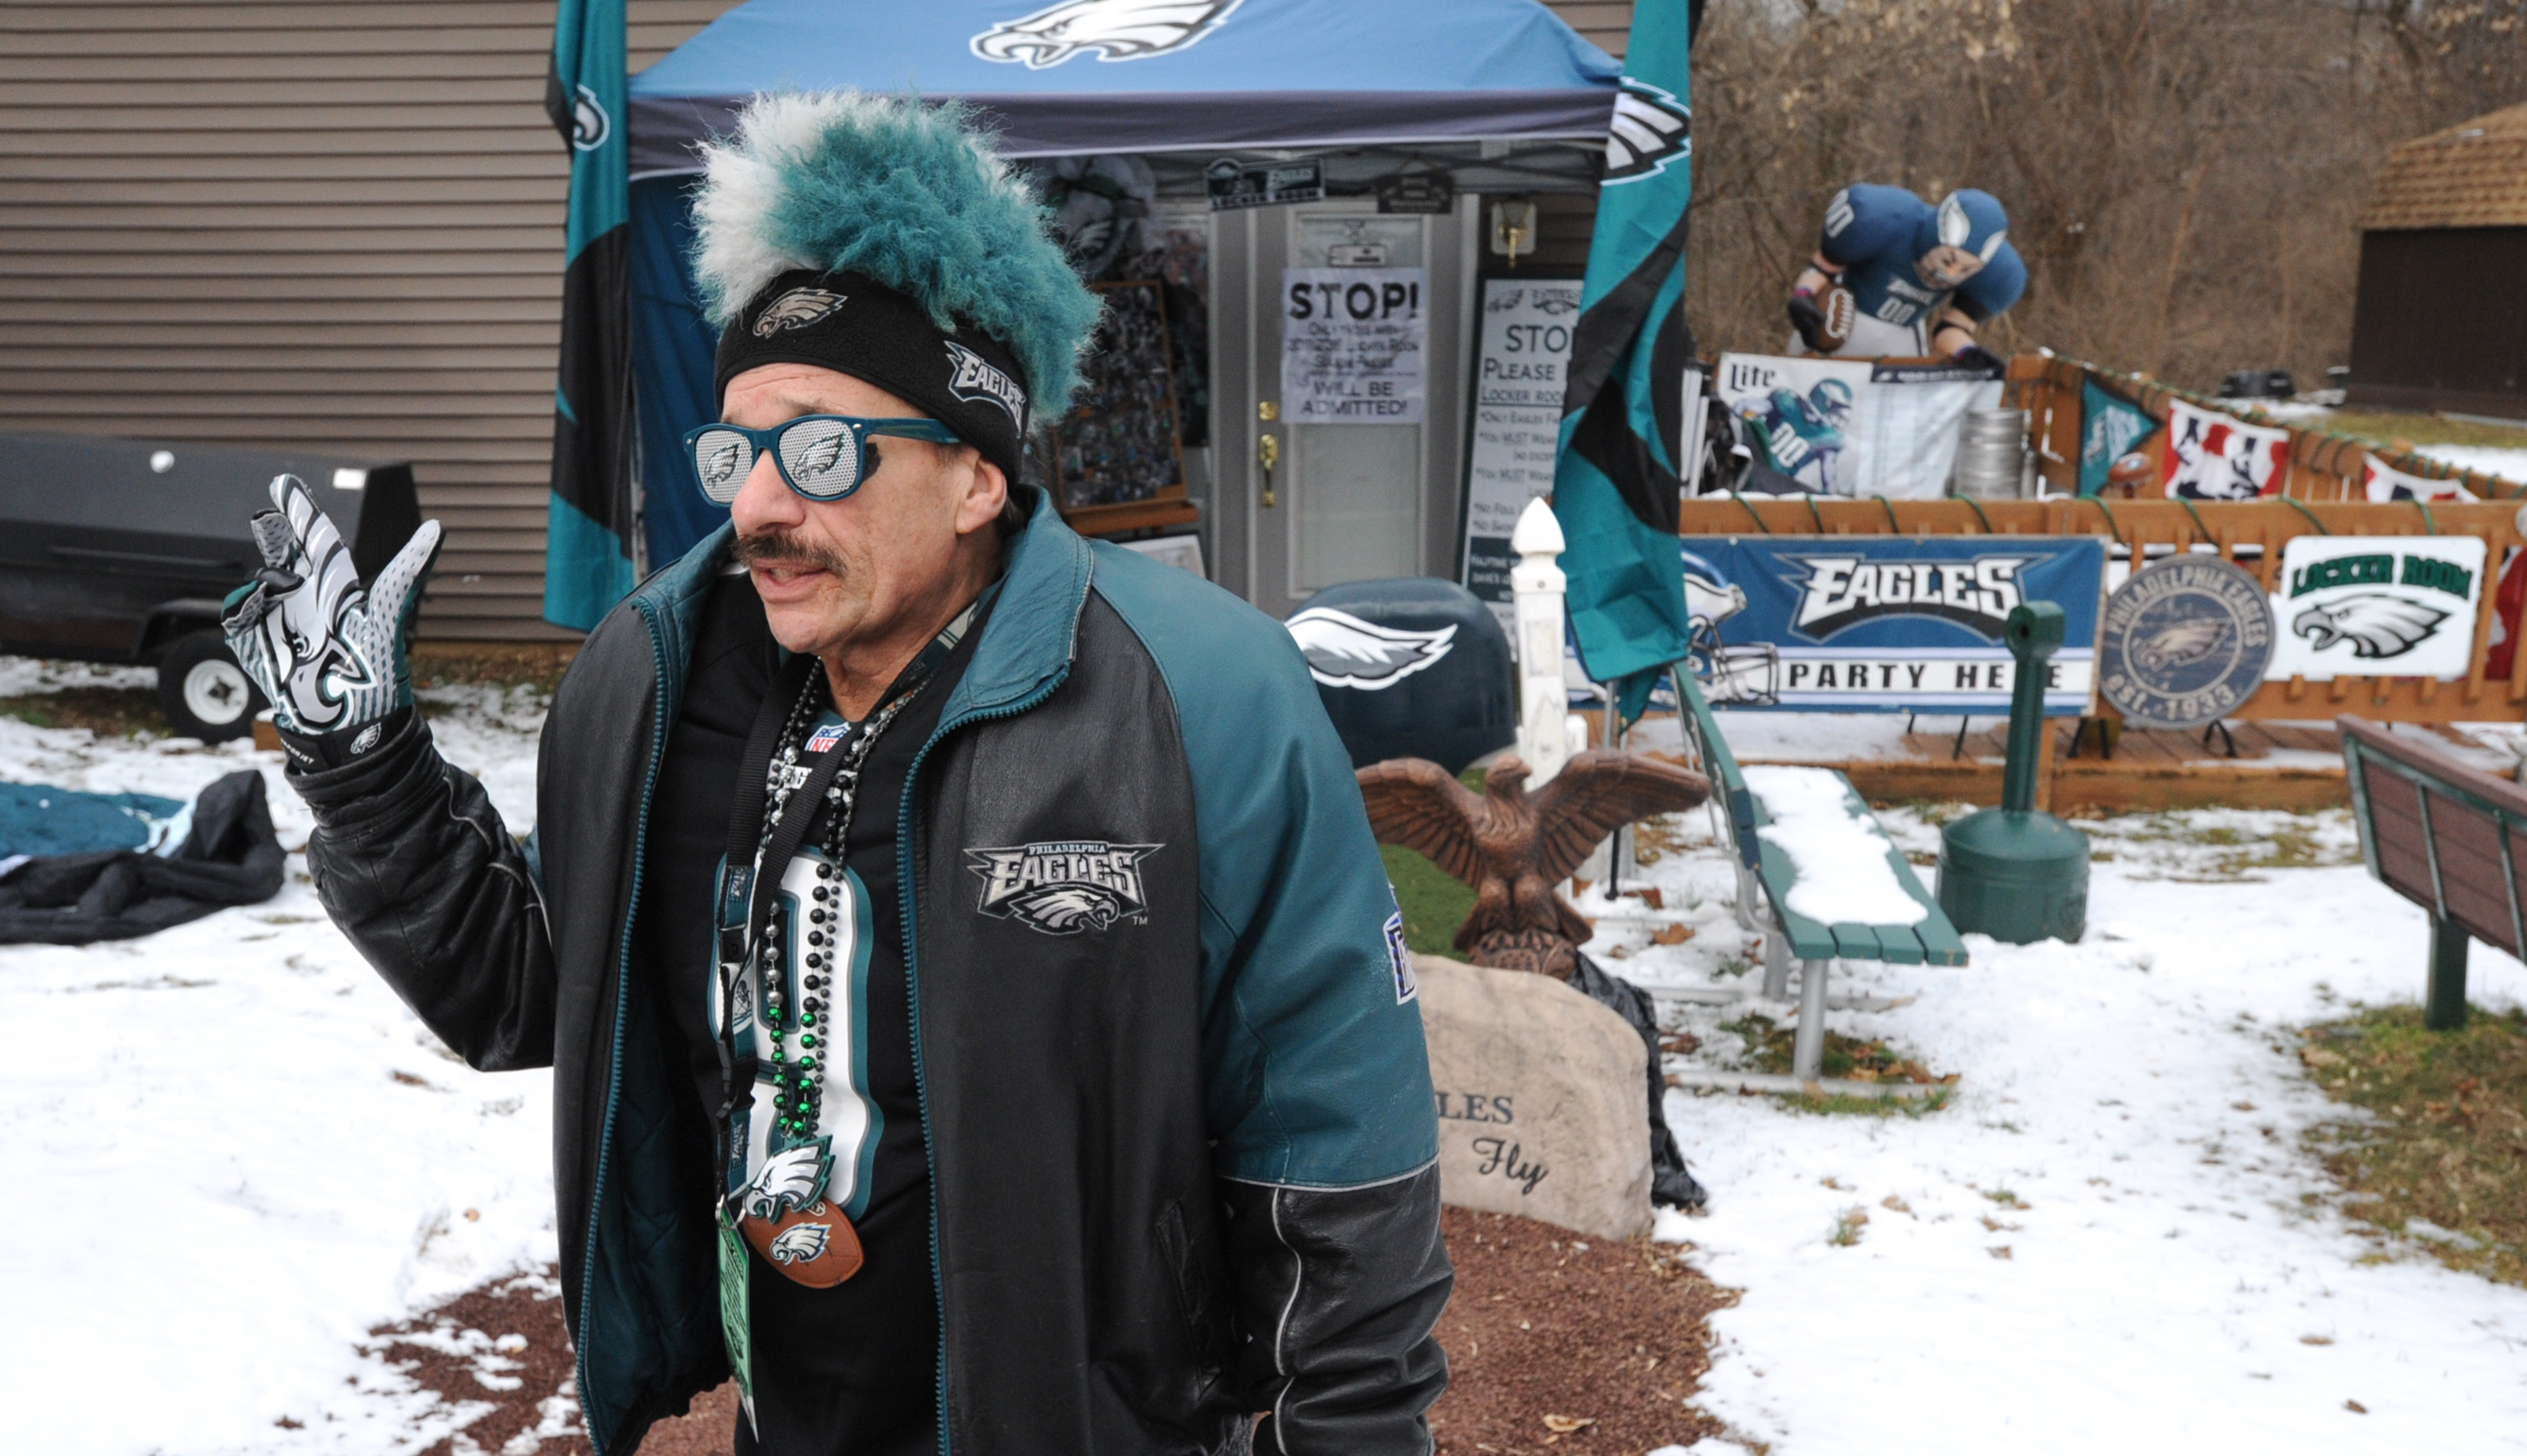 """Barry Vagnoni´s """"Man Cave"""" collection of Philadelphia Eagles memorabilia starts in his backyard with logos and dsisplay designed to keep Dallas Fans out are shown Thursday, Feb. 1, 2018 in Reading, Pa. (Bradley C Bower/Philadelphia Inquirer)"""